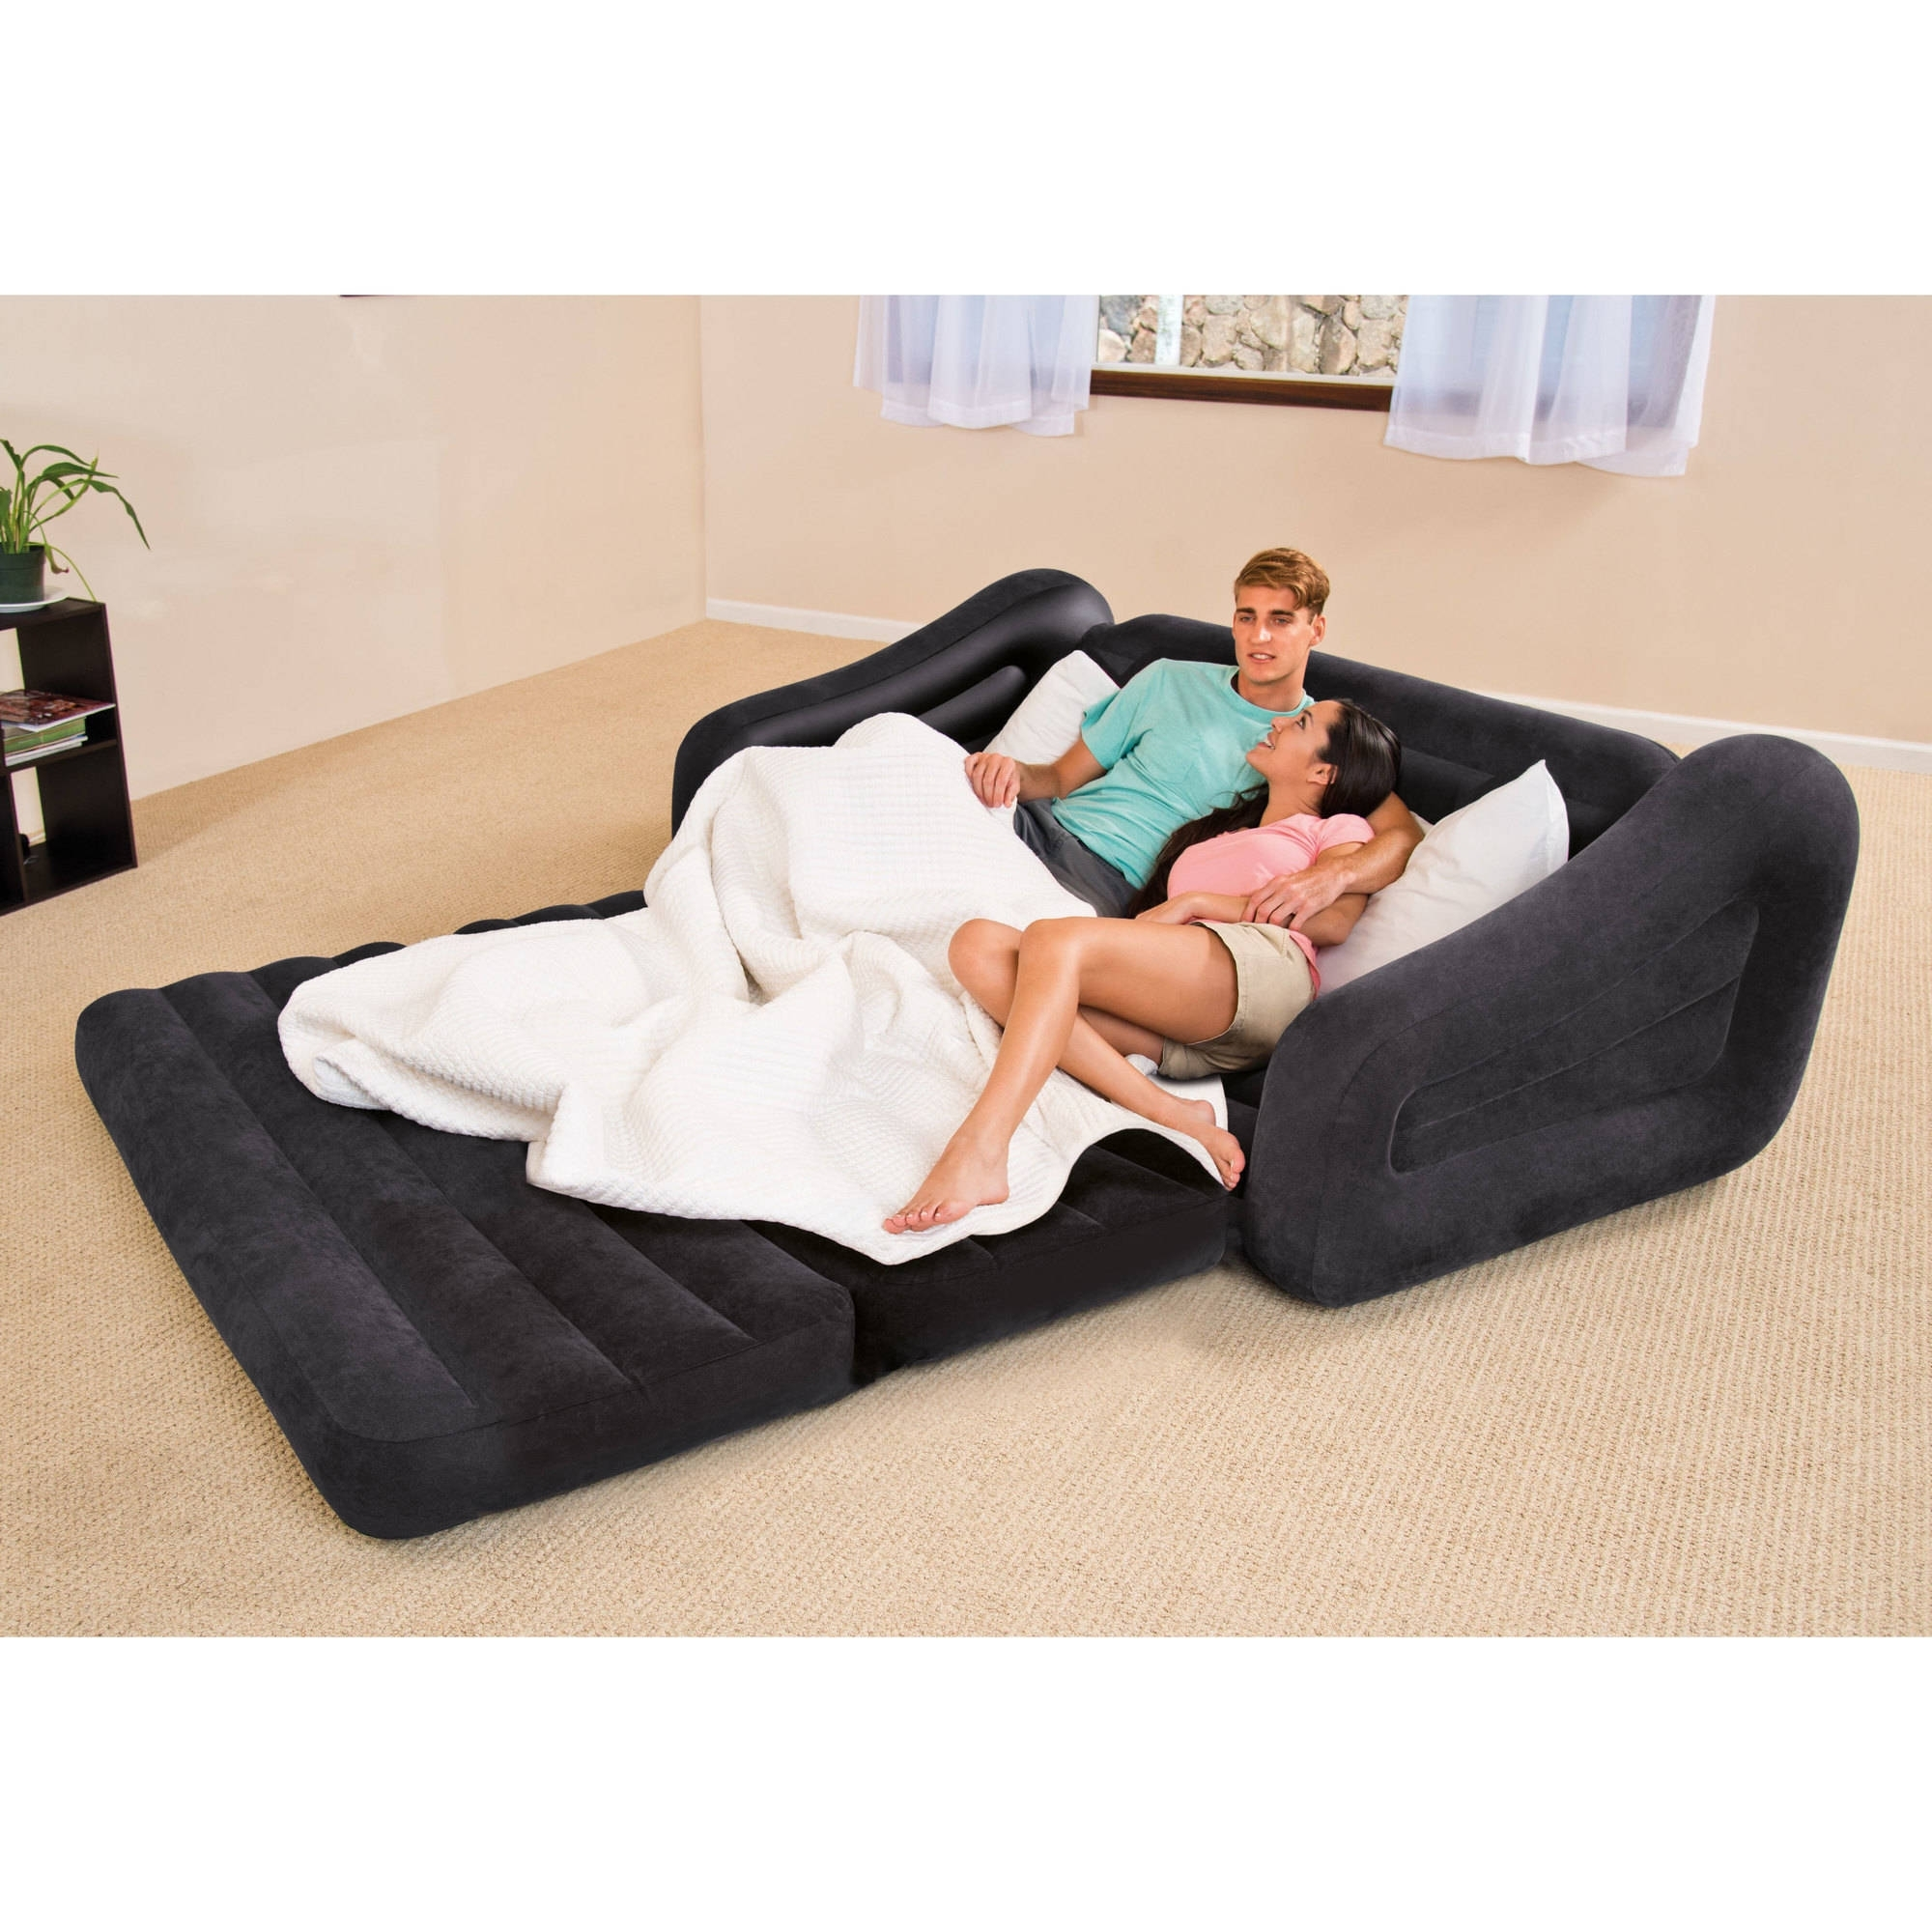 2017 Intex Queen Inflatable Pull Out Sofa Bed – Walmart Inside Pull Out Sofa Chairs (View 1 of 15)